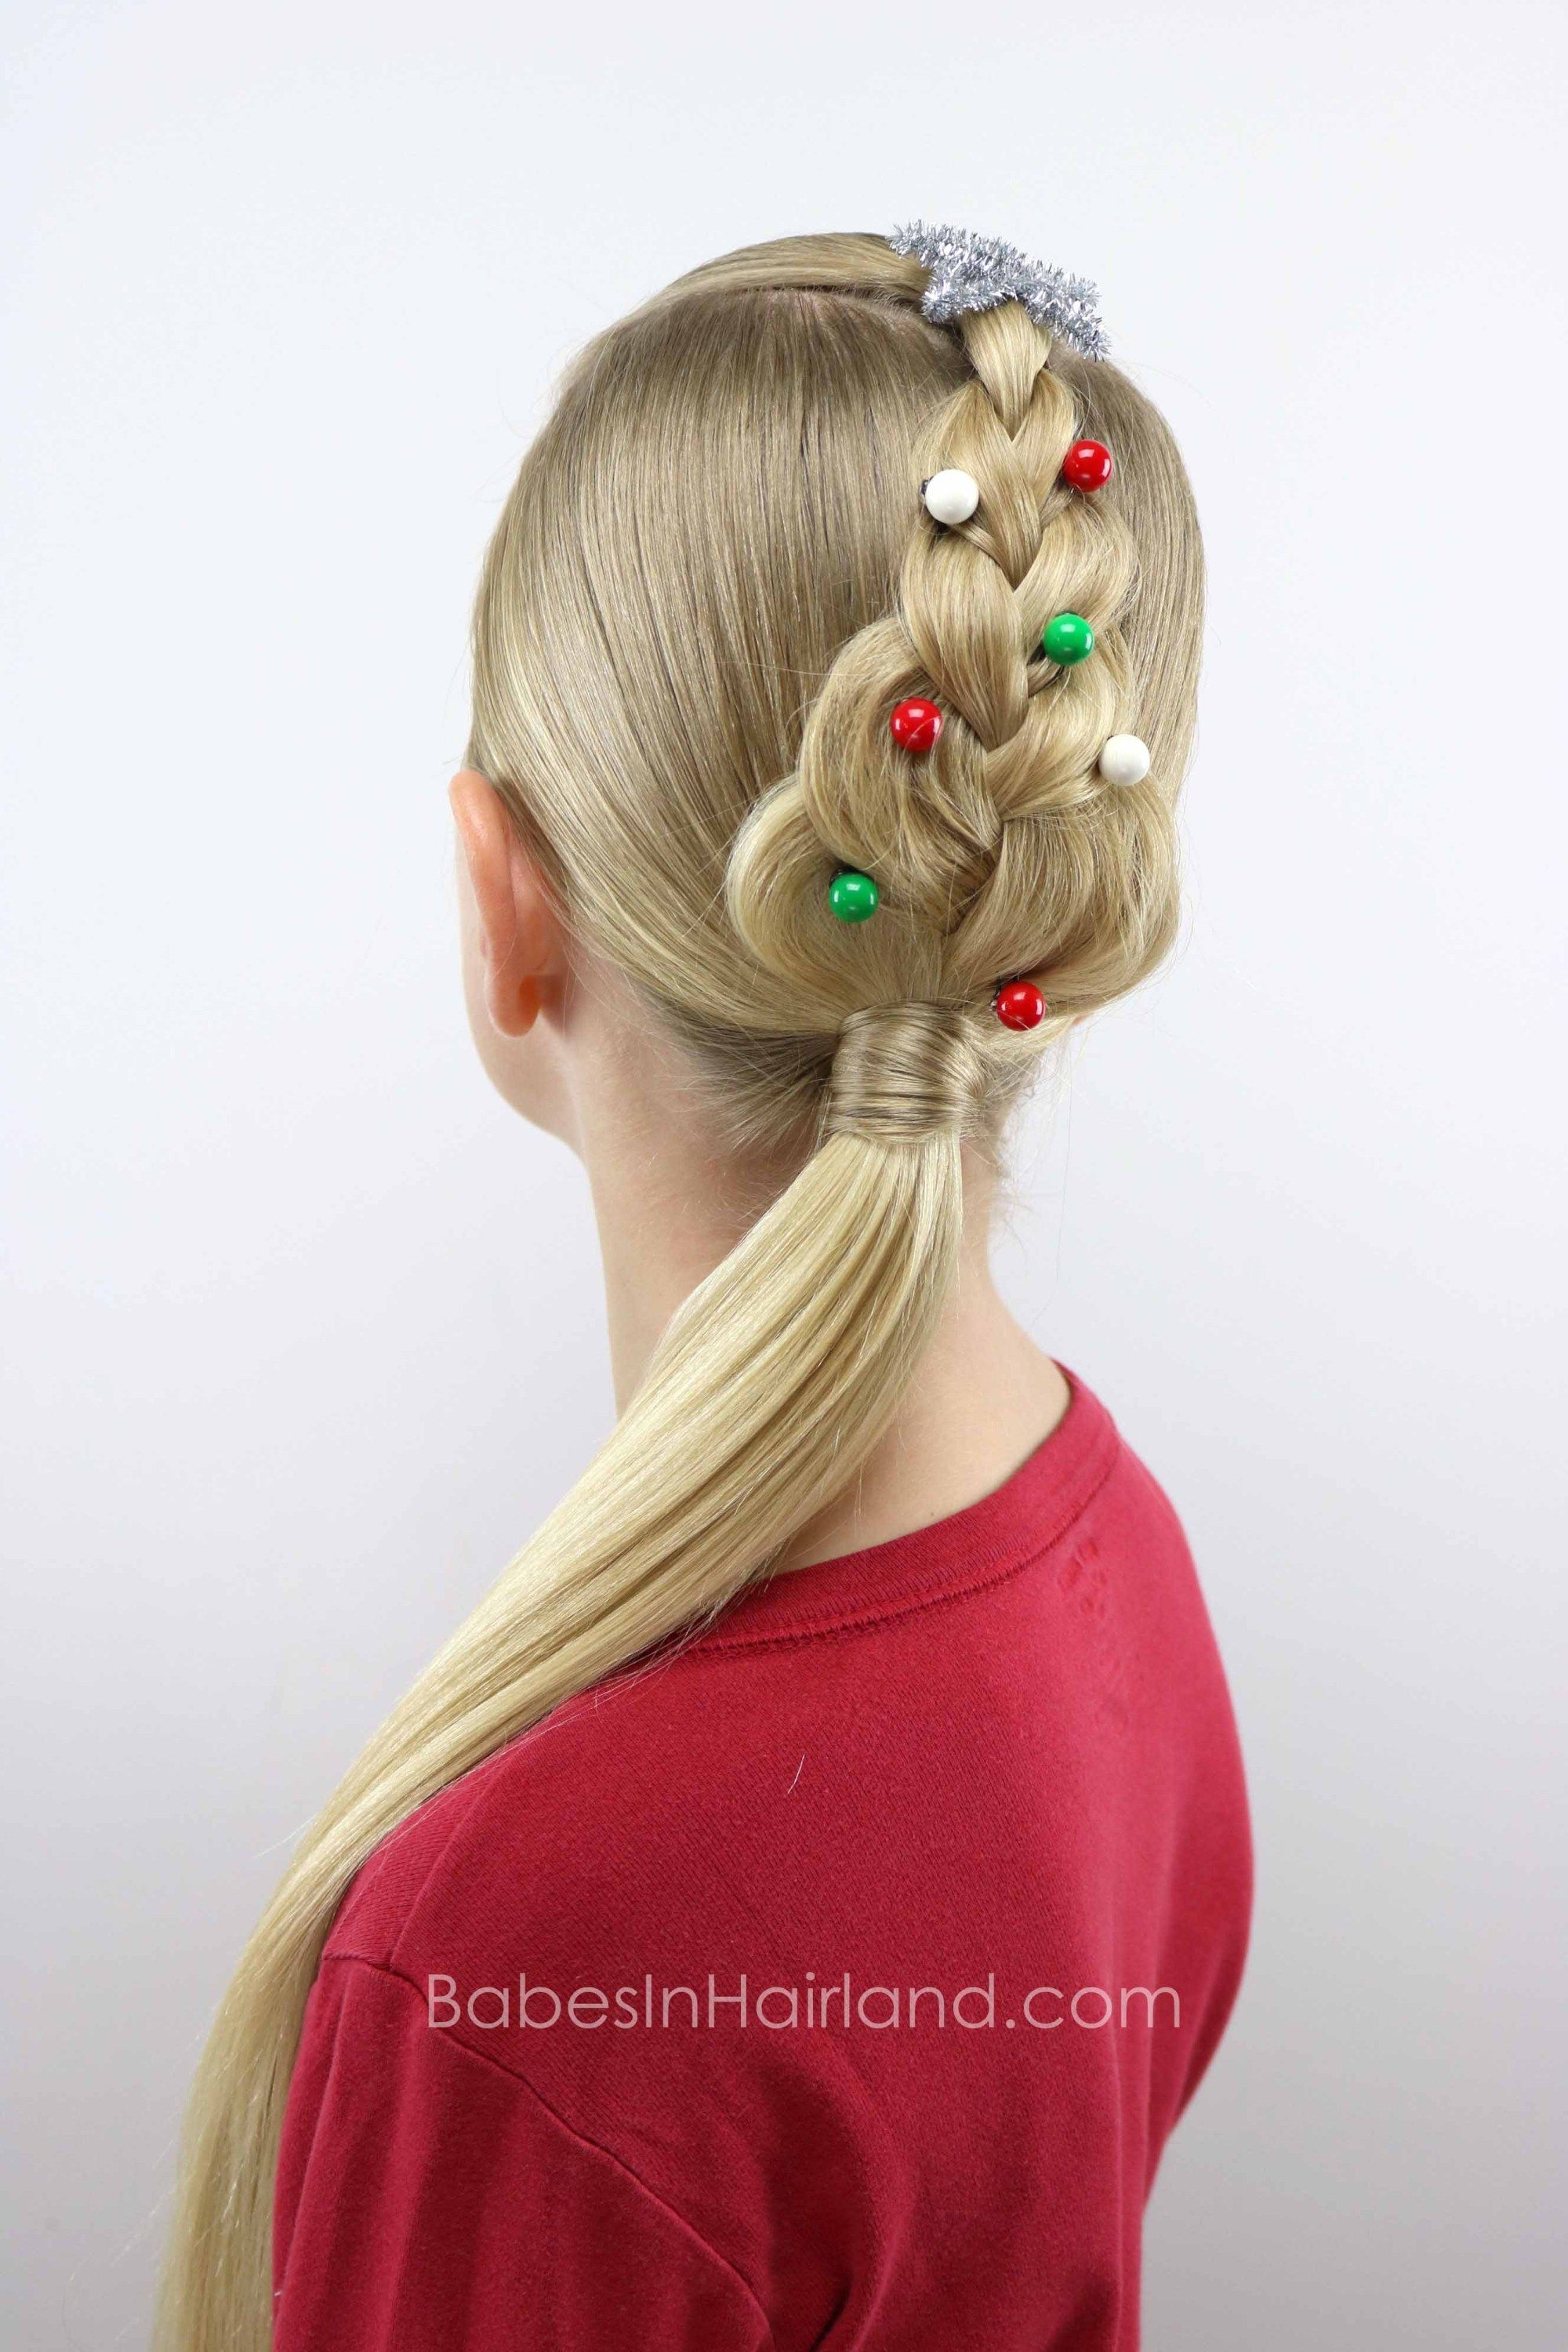 For An Easy Christmas Hairstyle Try This Cute Christmas Tree Braid From Babesinhairland Com Cool Braid Hairstyles Kids Braided Hairstyles Braided Hairstyles